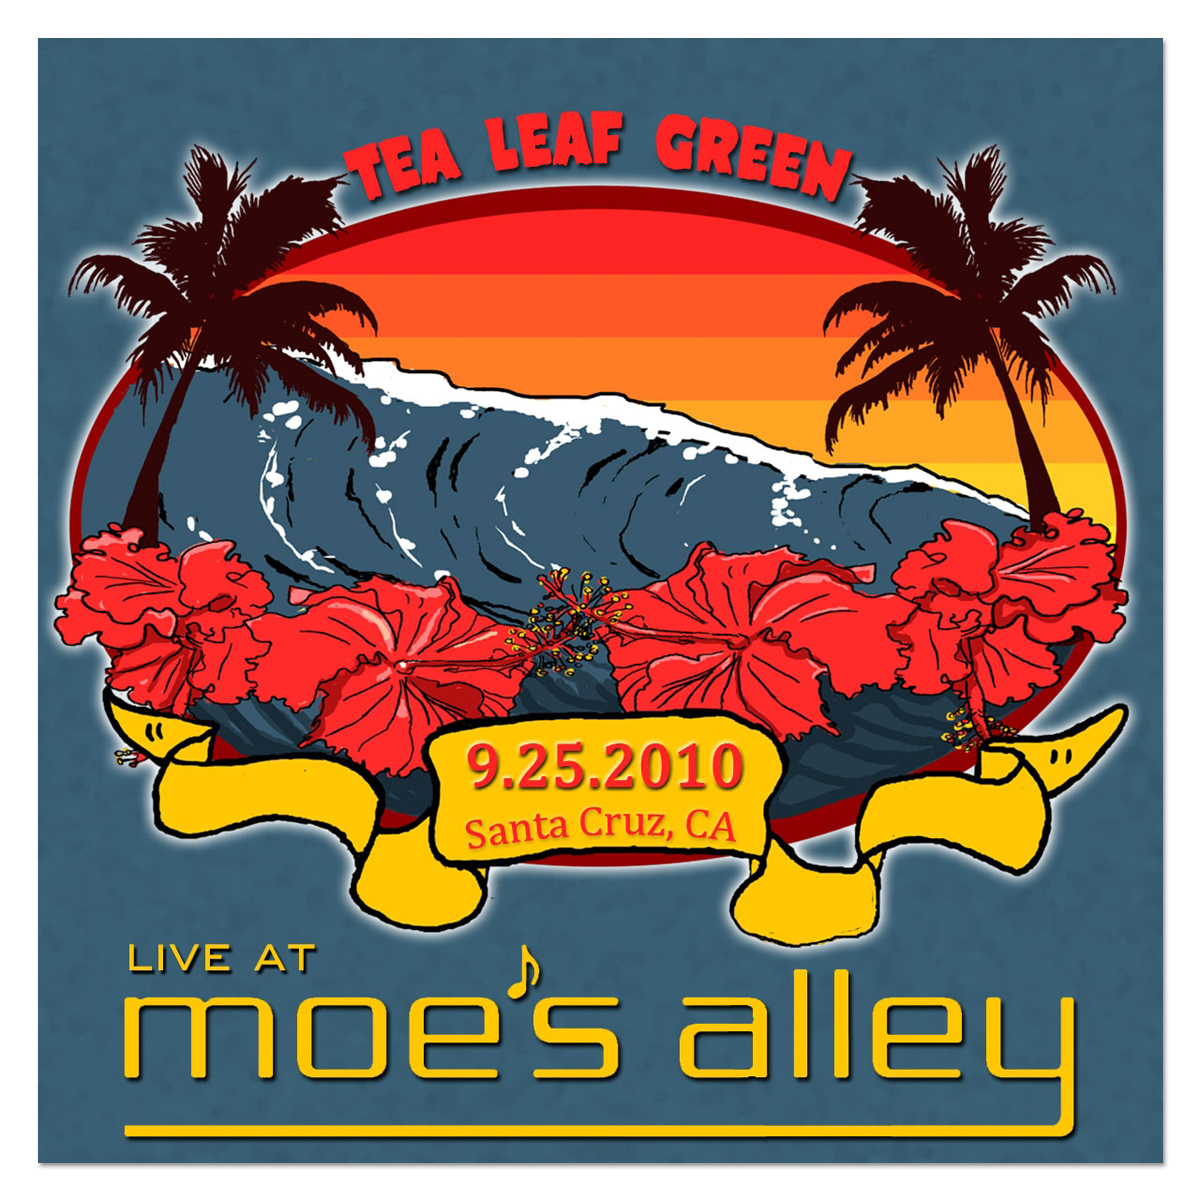 Moe's Alley, Santa Cruz, CA - 9/25/2010